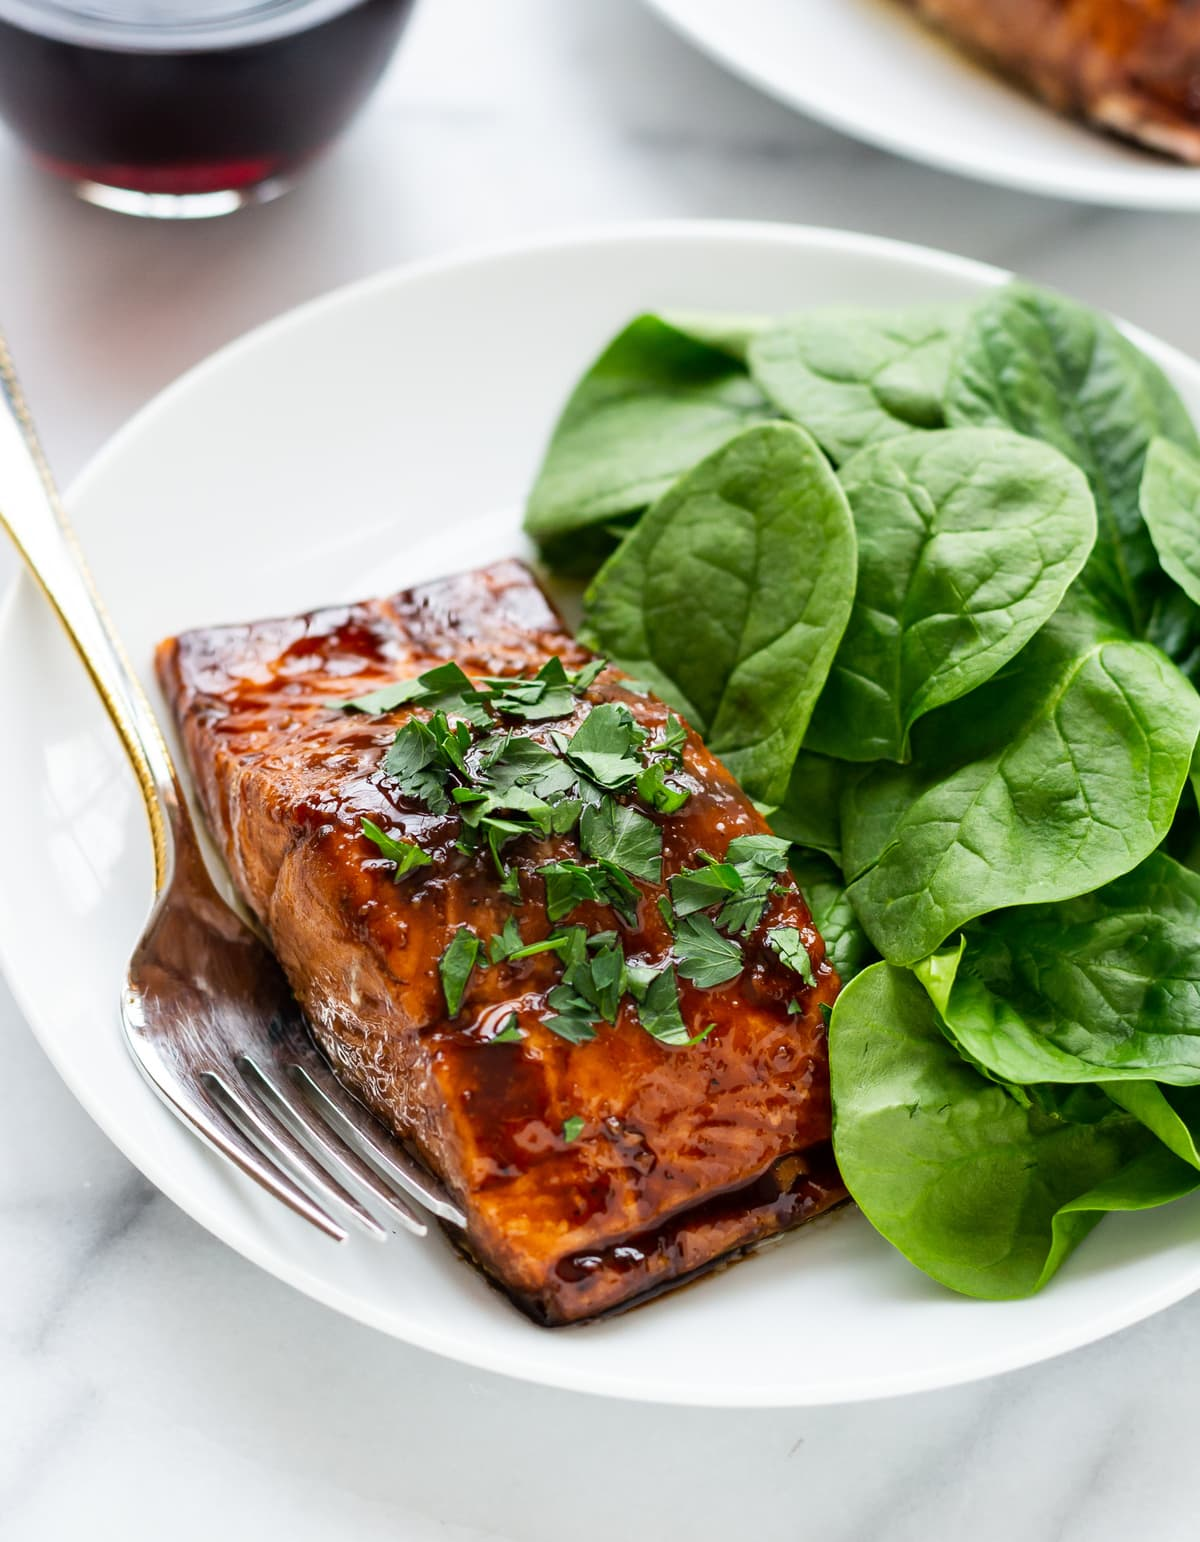 Perfect Balsamic Glazed Salmon. Easy, impessive and ready in 20 minutes!